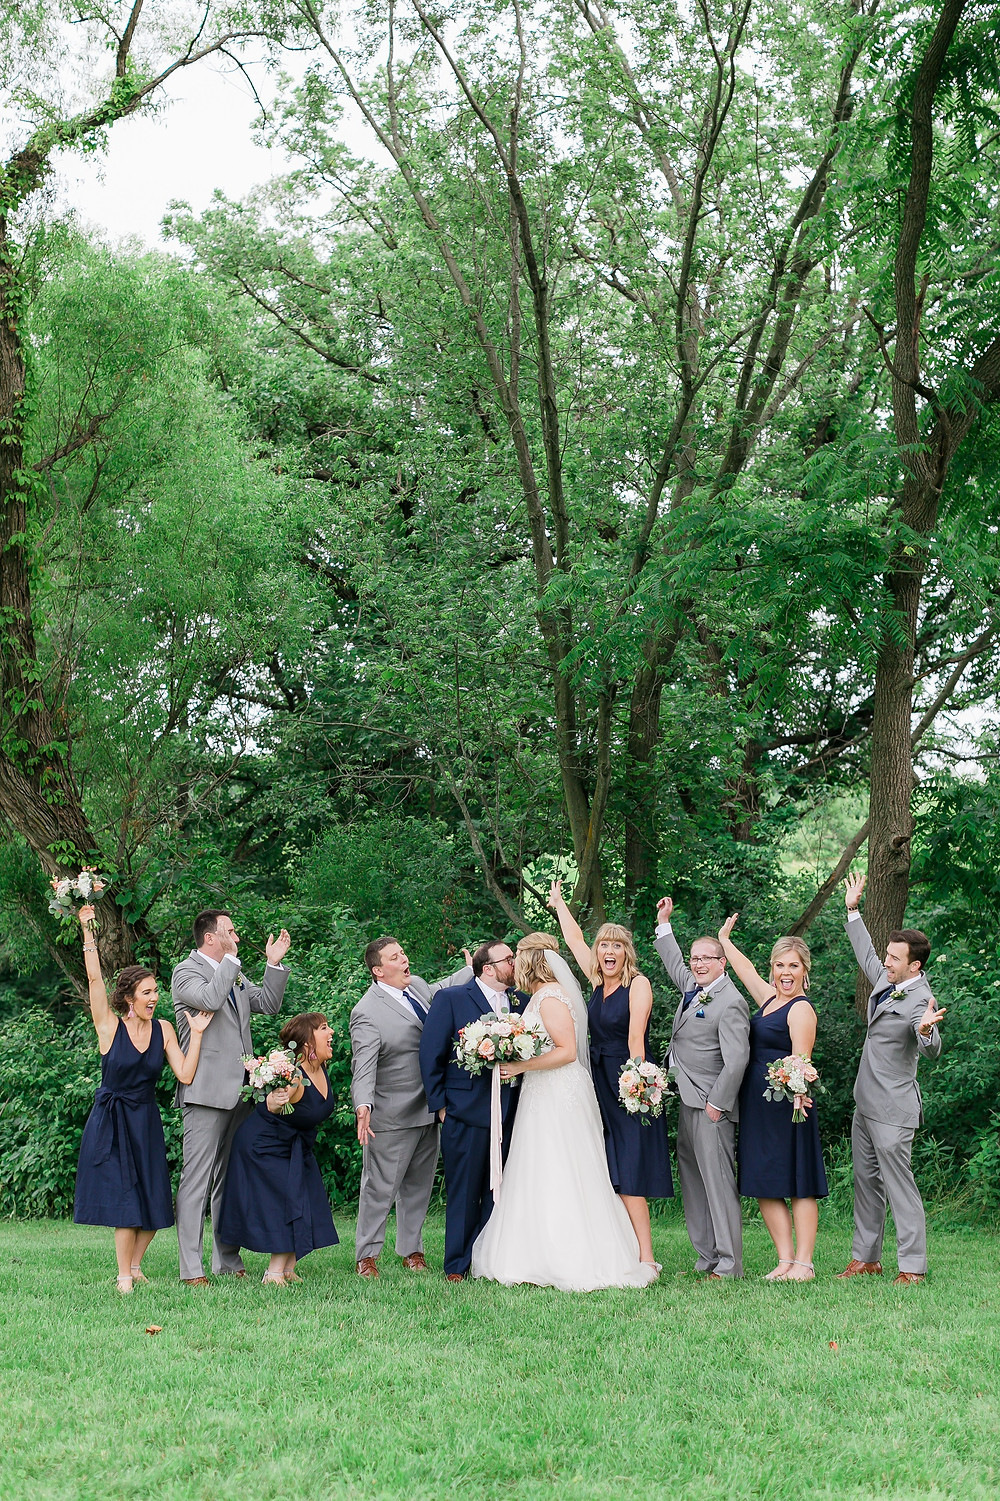 Bridal party cheering in navy bridesmaid dresses and grey suits for outdoor wedding at Rapid Creek Cidery in Iowa City